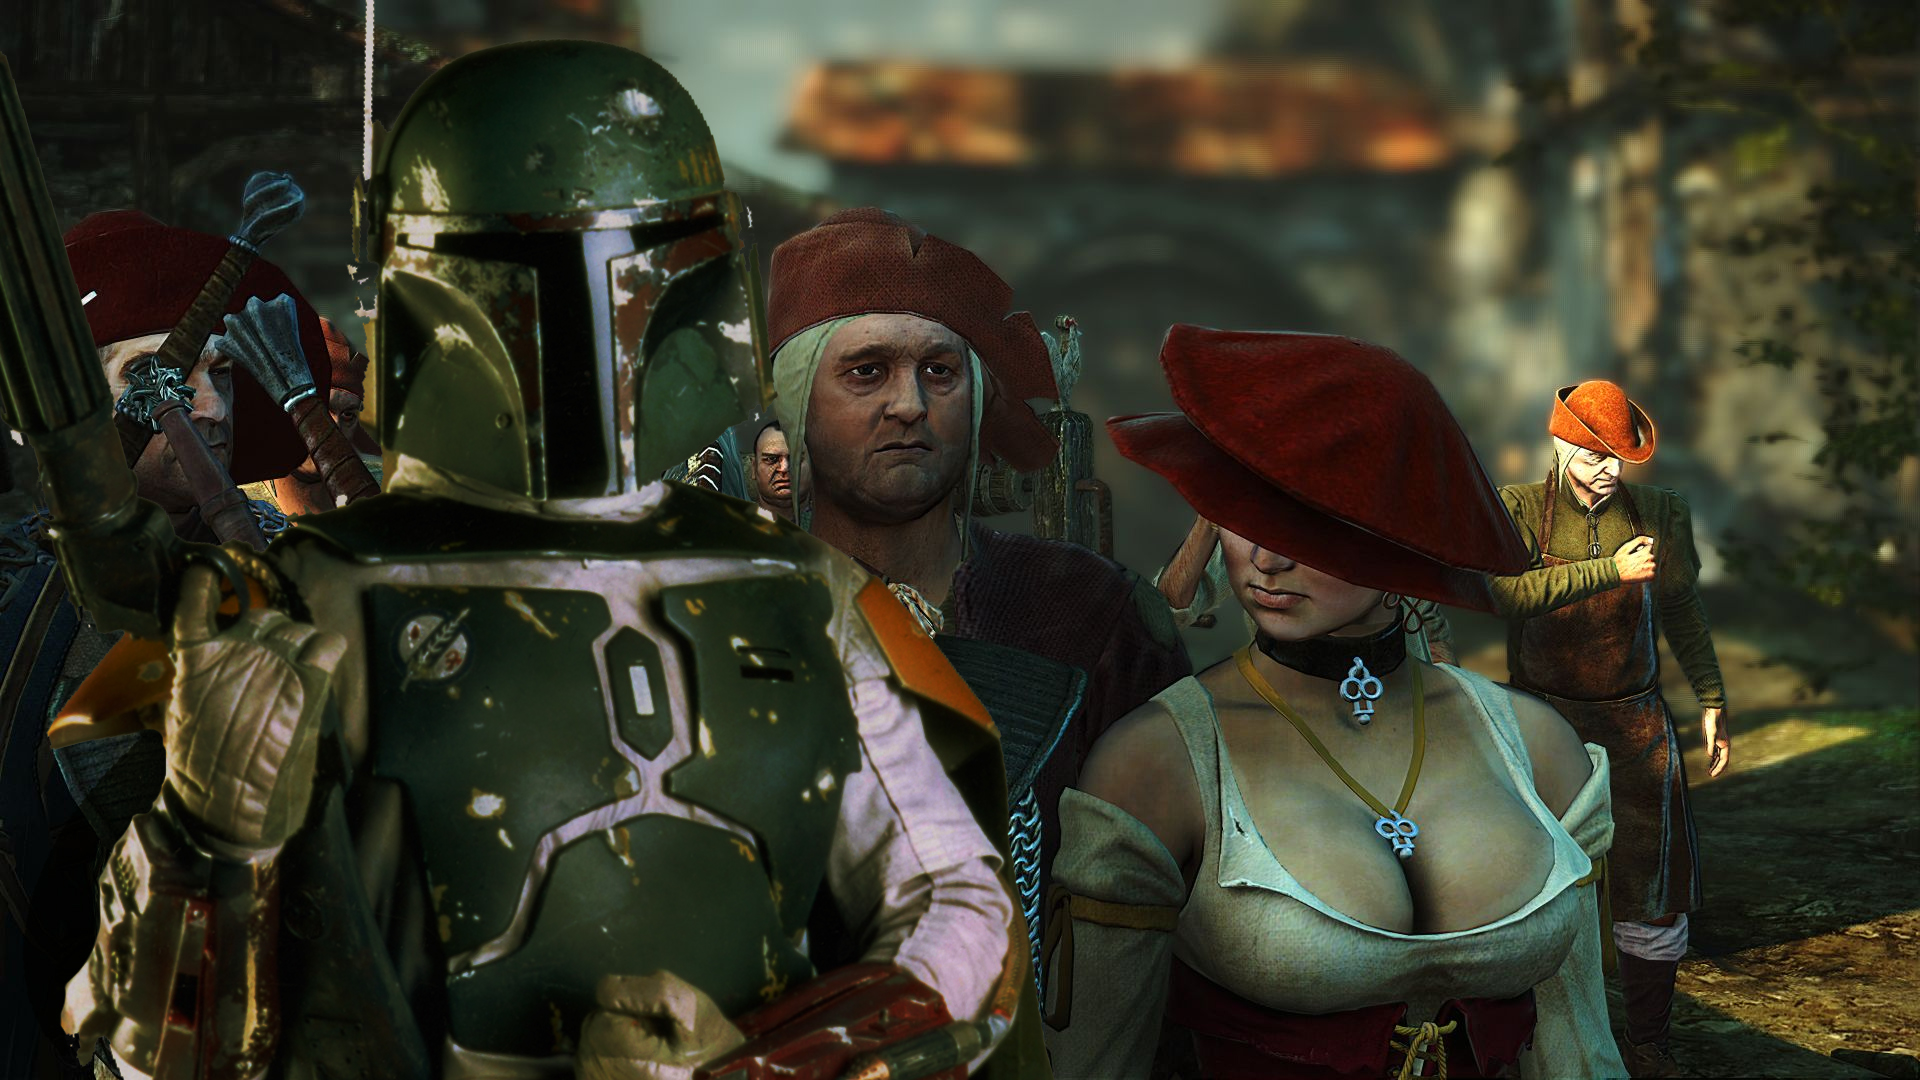 Boba Fett Wallpaper 1920x1080 Boba Fett The Witcher 1920x1080